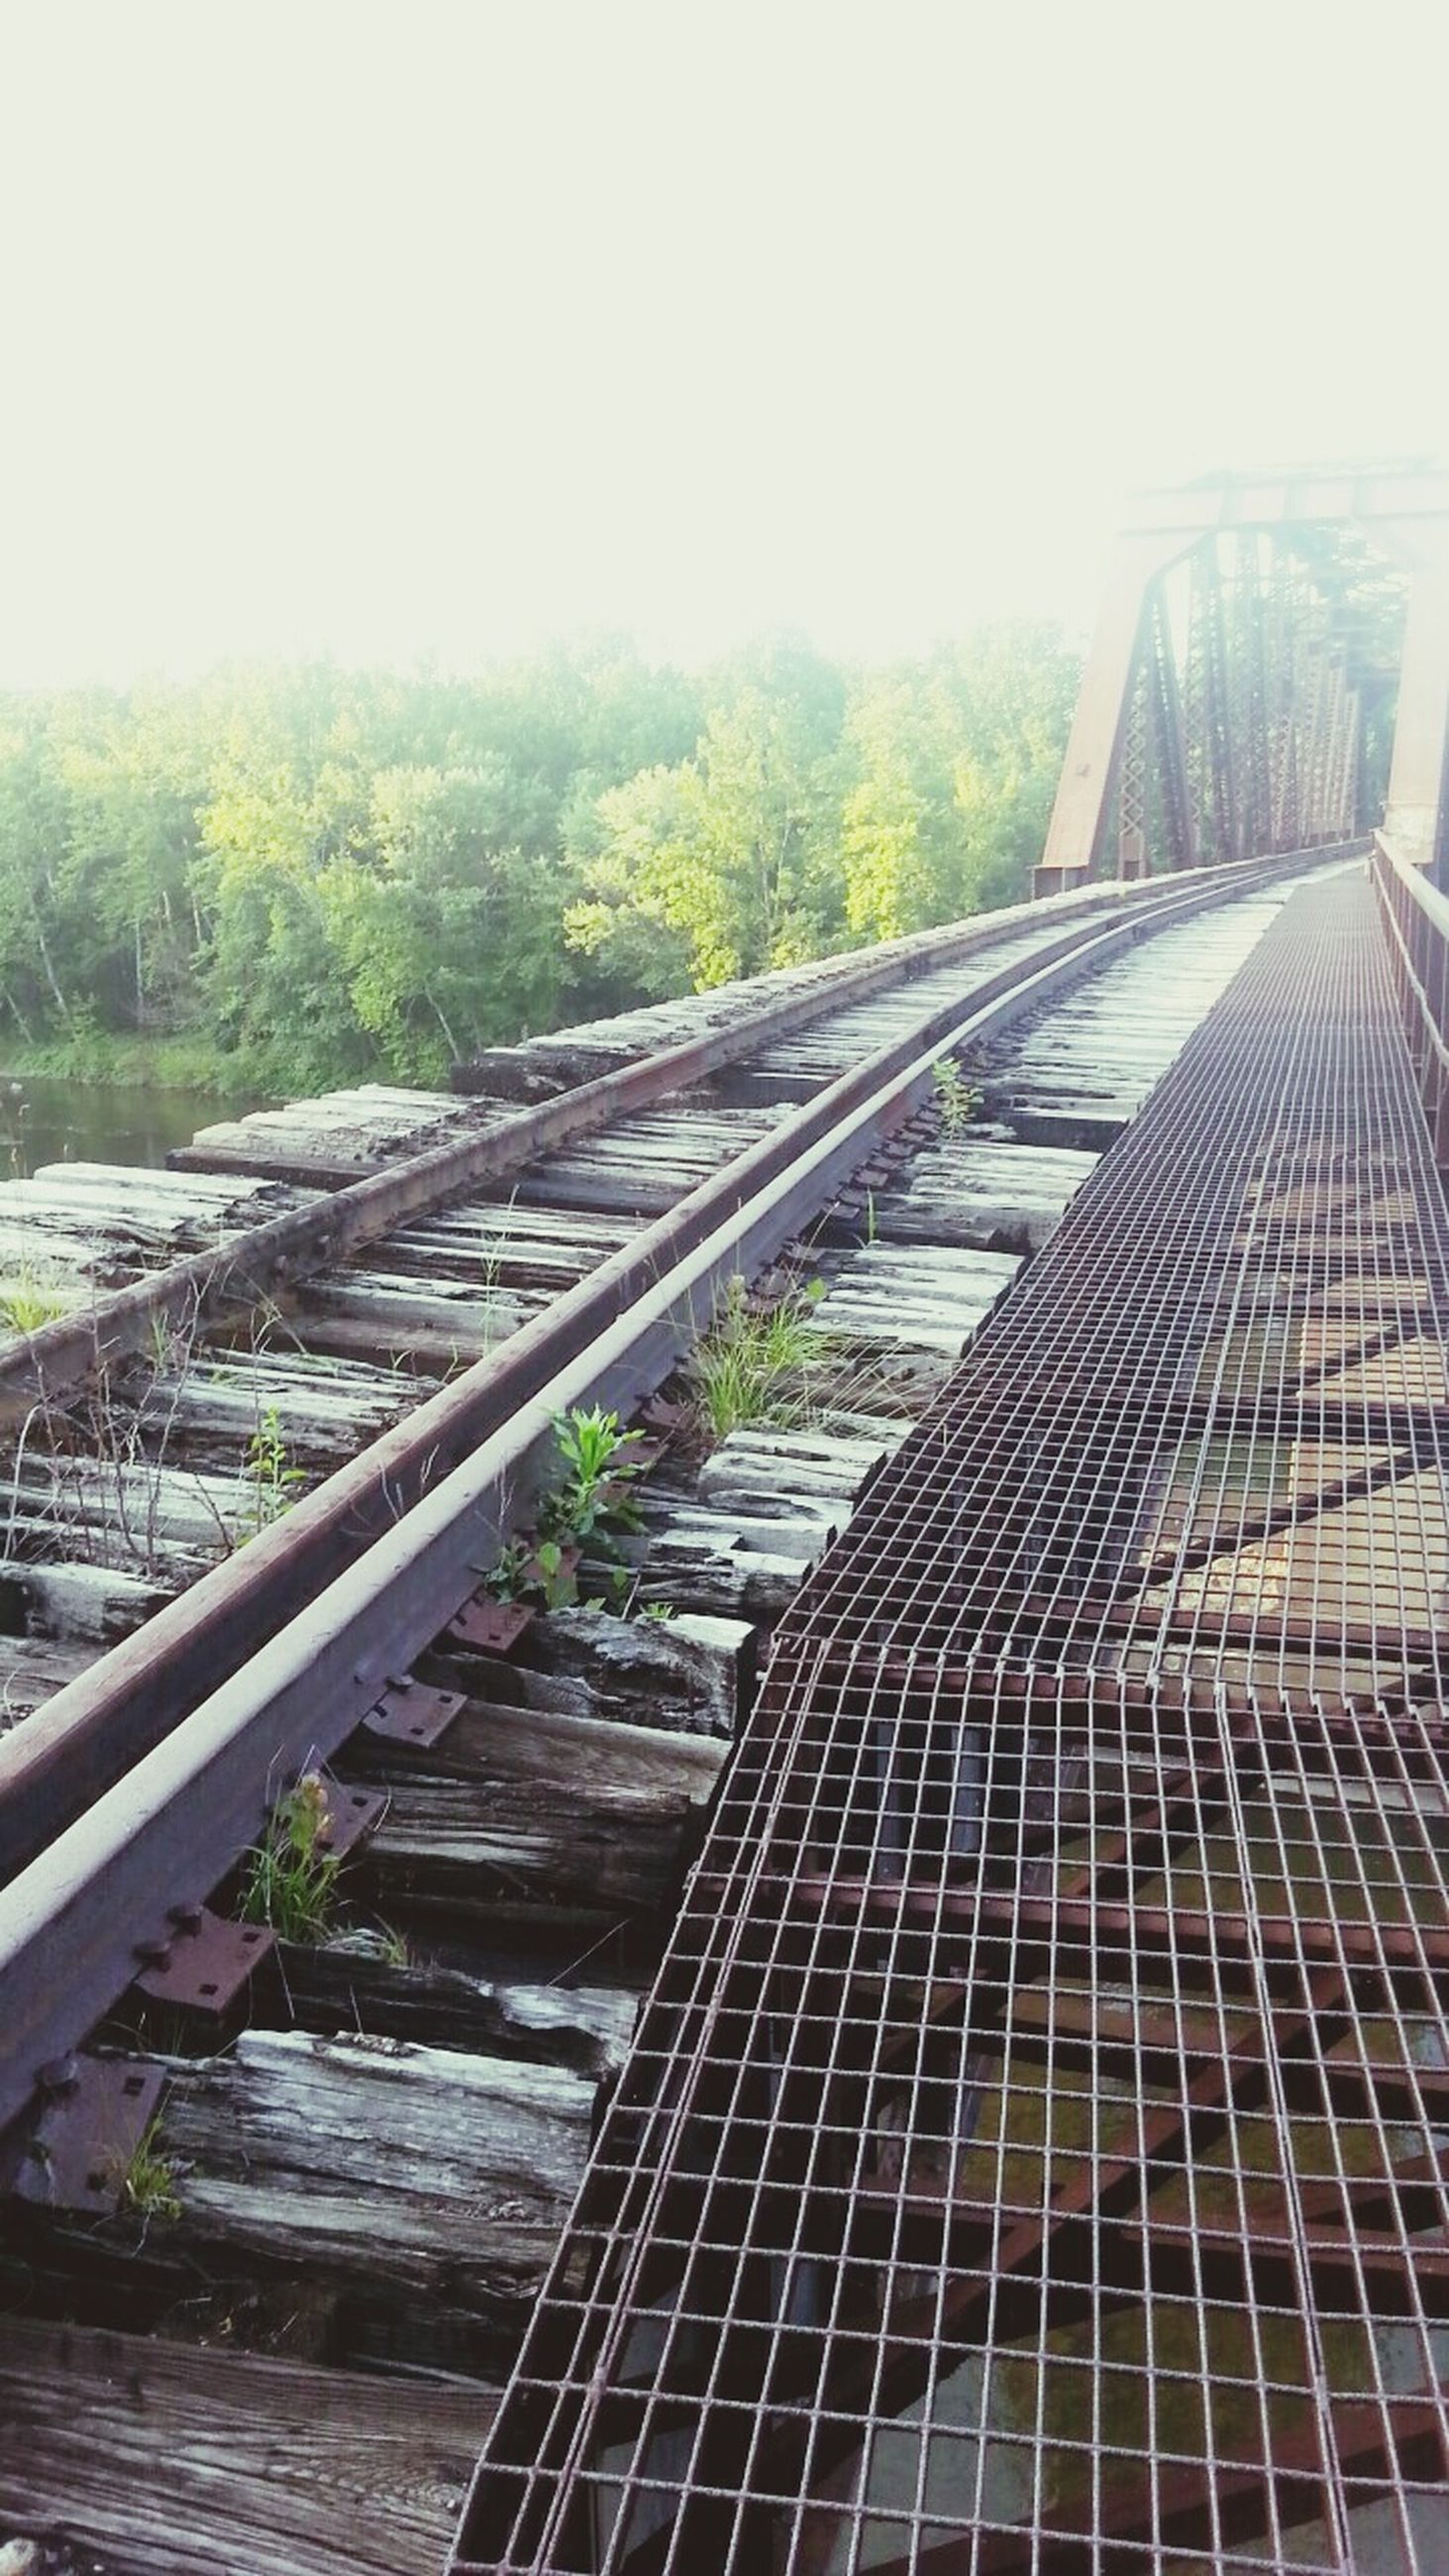 railroad track, rail transportation, transportation, the way forward, diminishing perspective, vanishing point, public transportation, railway track, clear sky, built structure, day, tree, sunlight, metal, architecture, sky, outdoors, no people, high angle view, railroad station